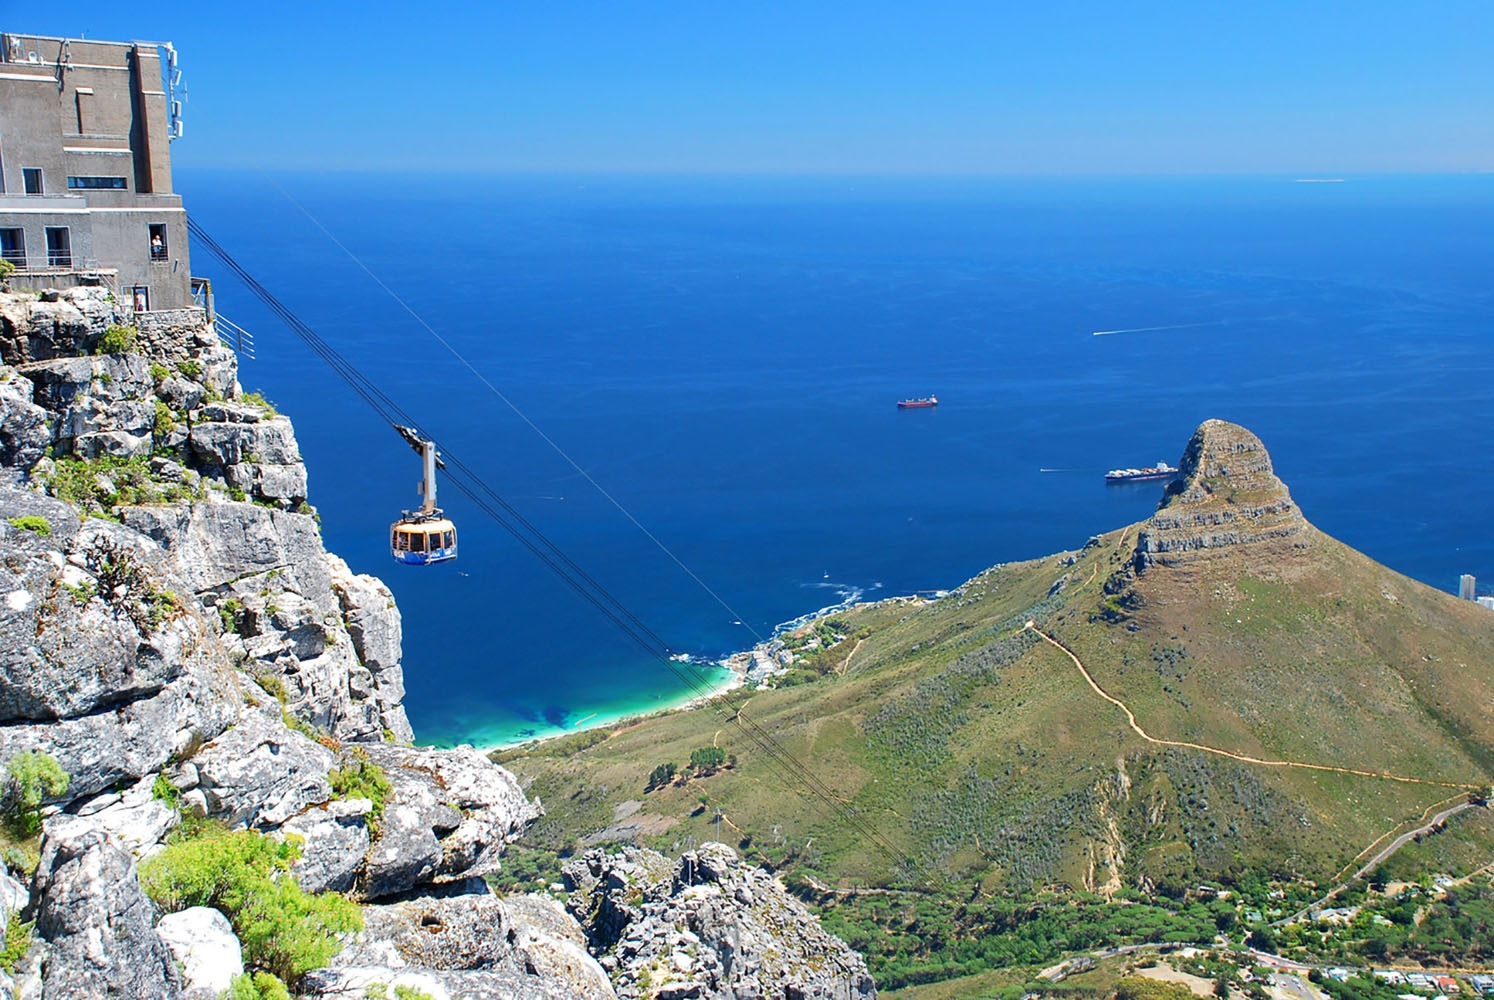 The cable car leading to the top of Table Mountain in Cape Town.